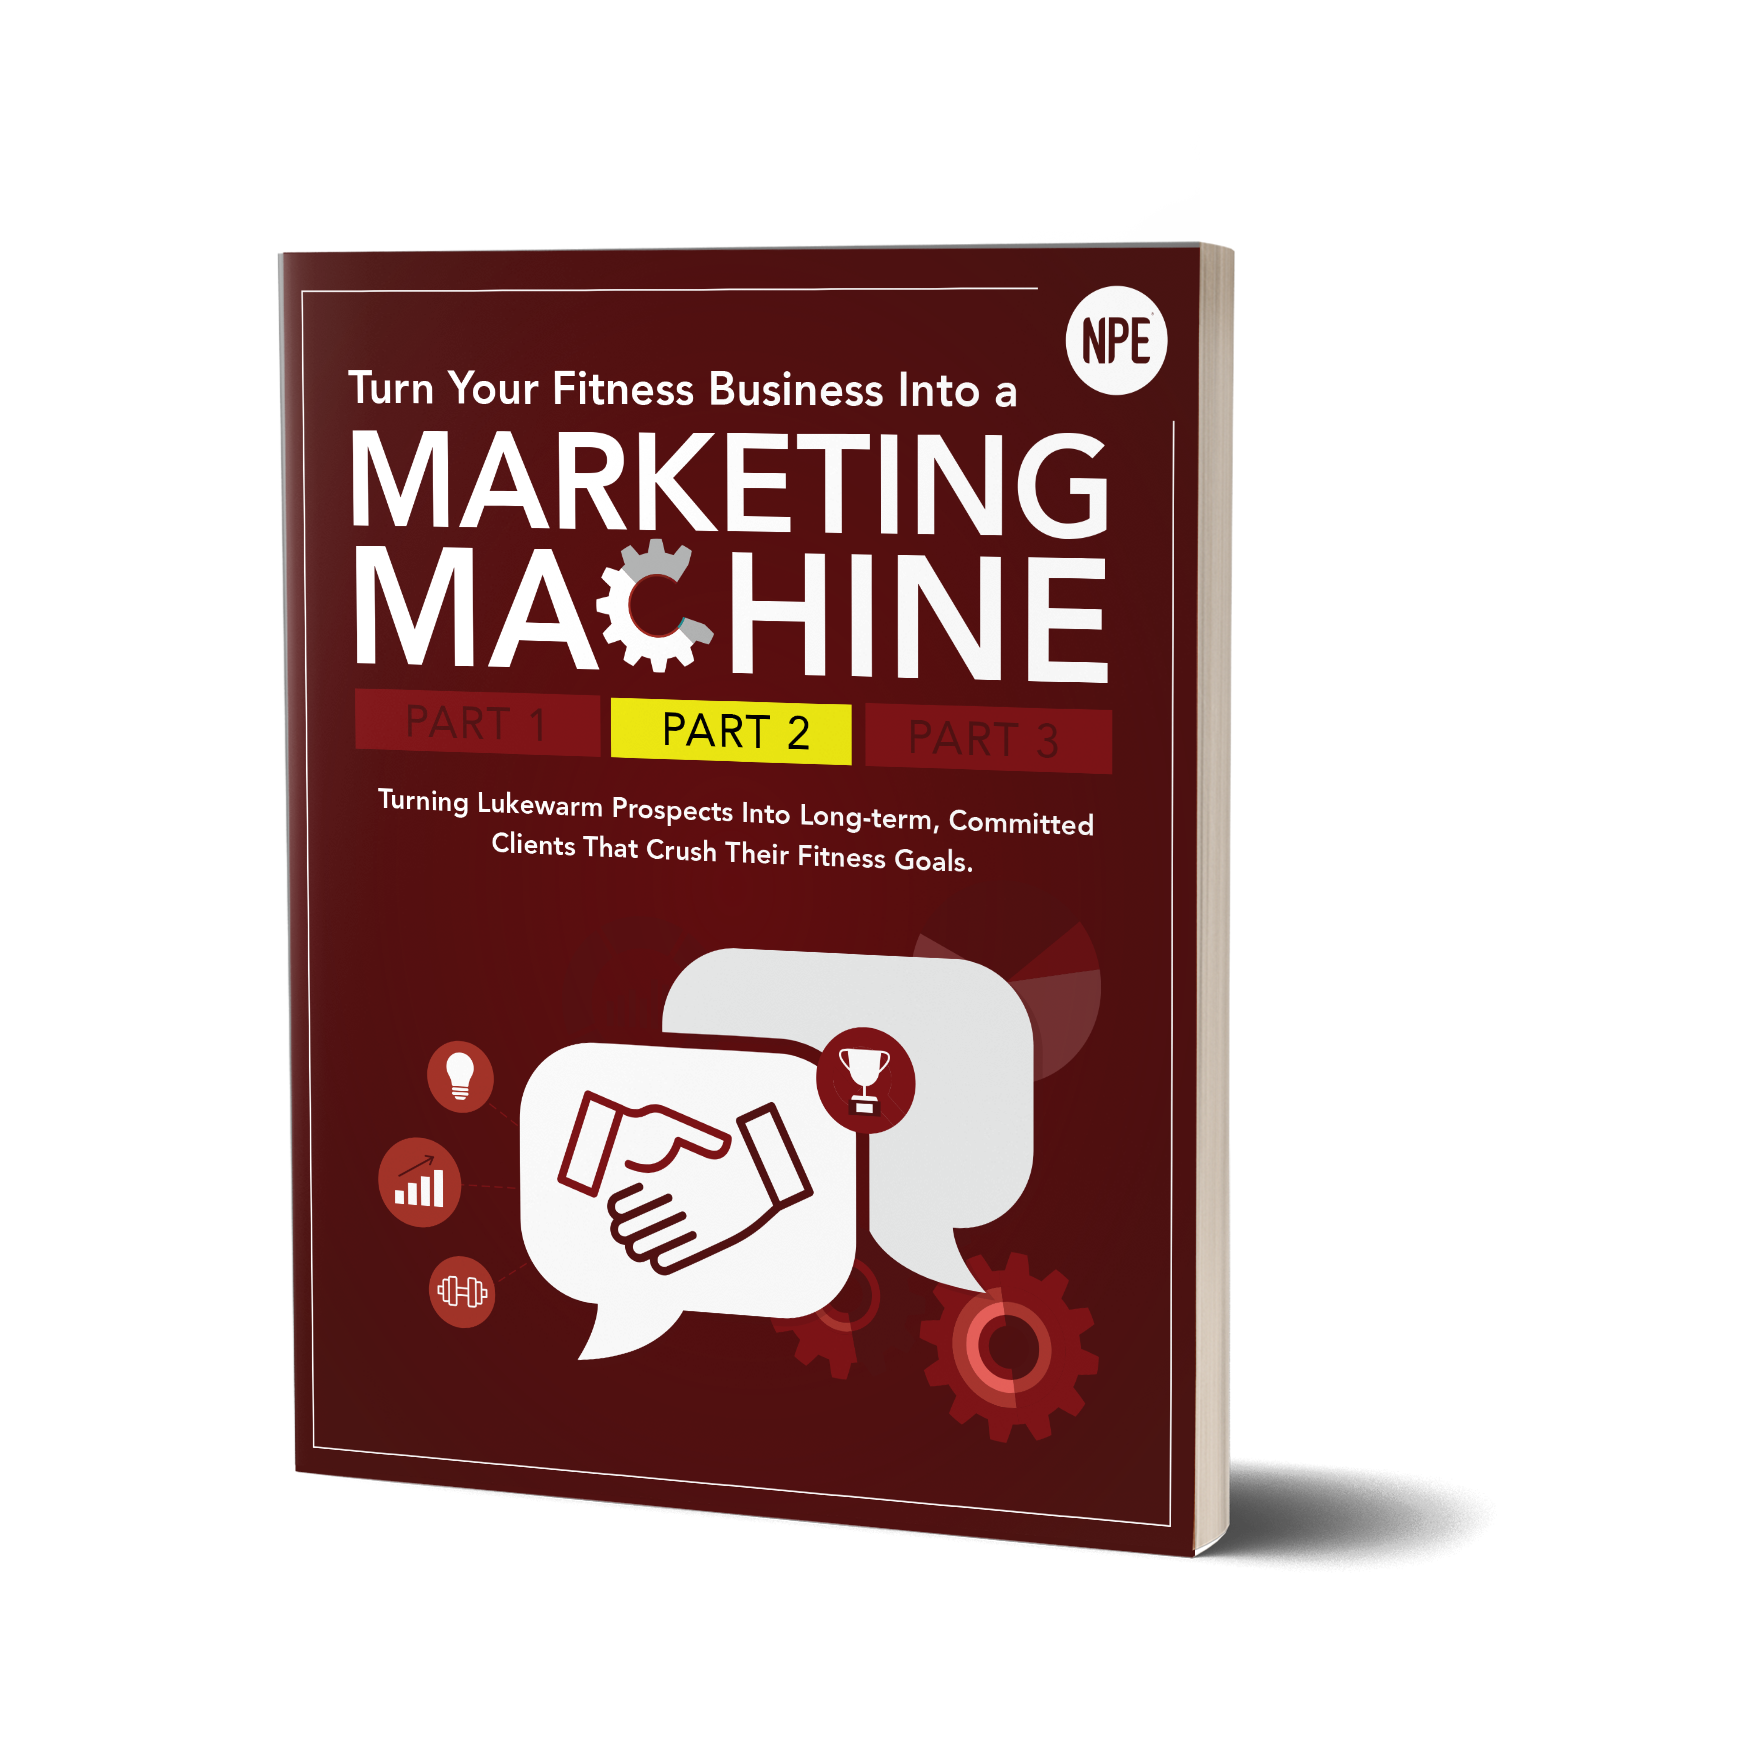 Turn Your Fitness Business Into A Marketing Machine: Part 2 Image